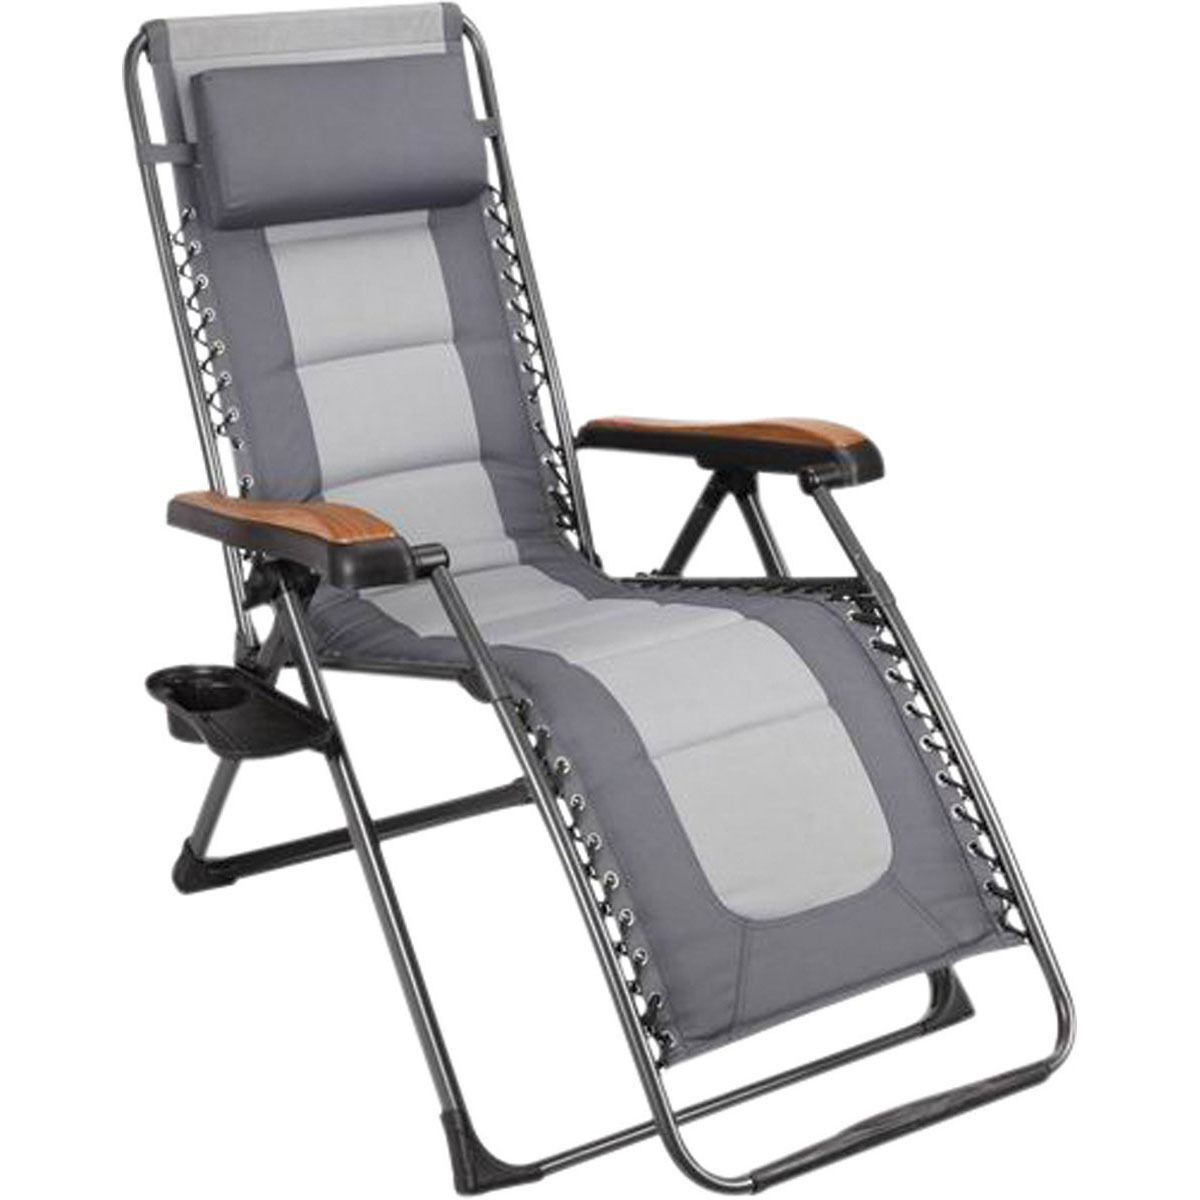 outdoor single folding camping chair cheap outdoor camping chair